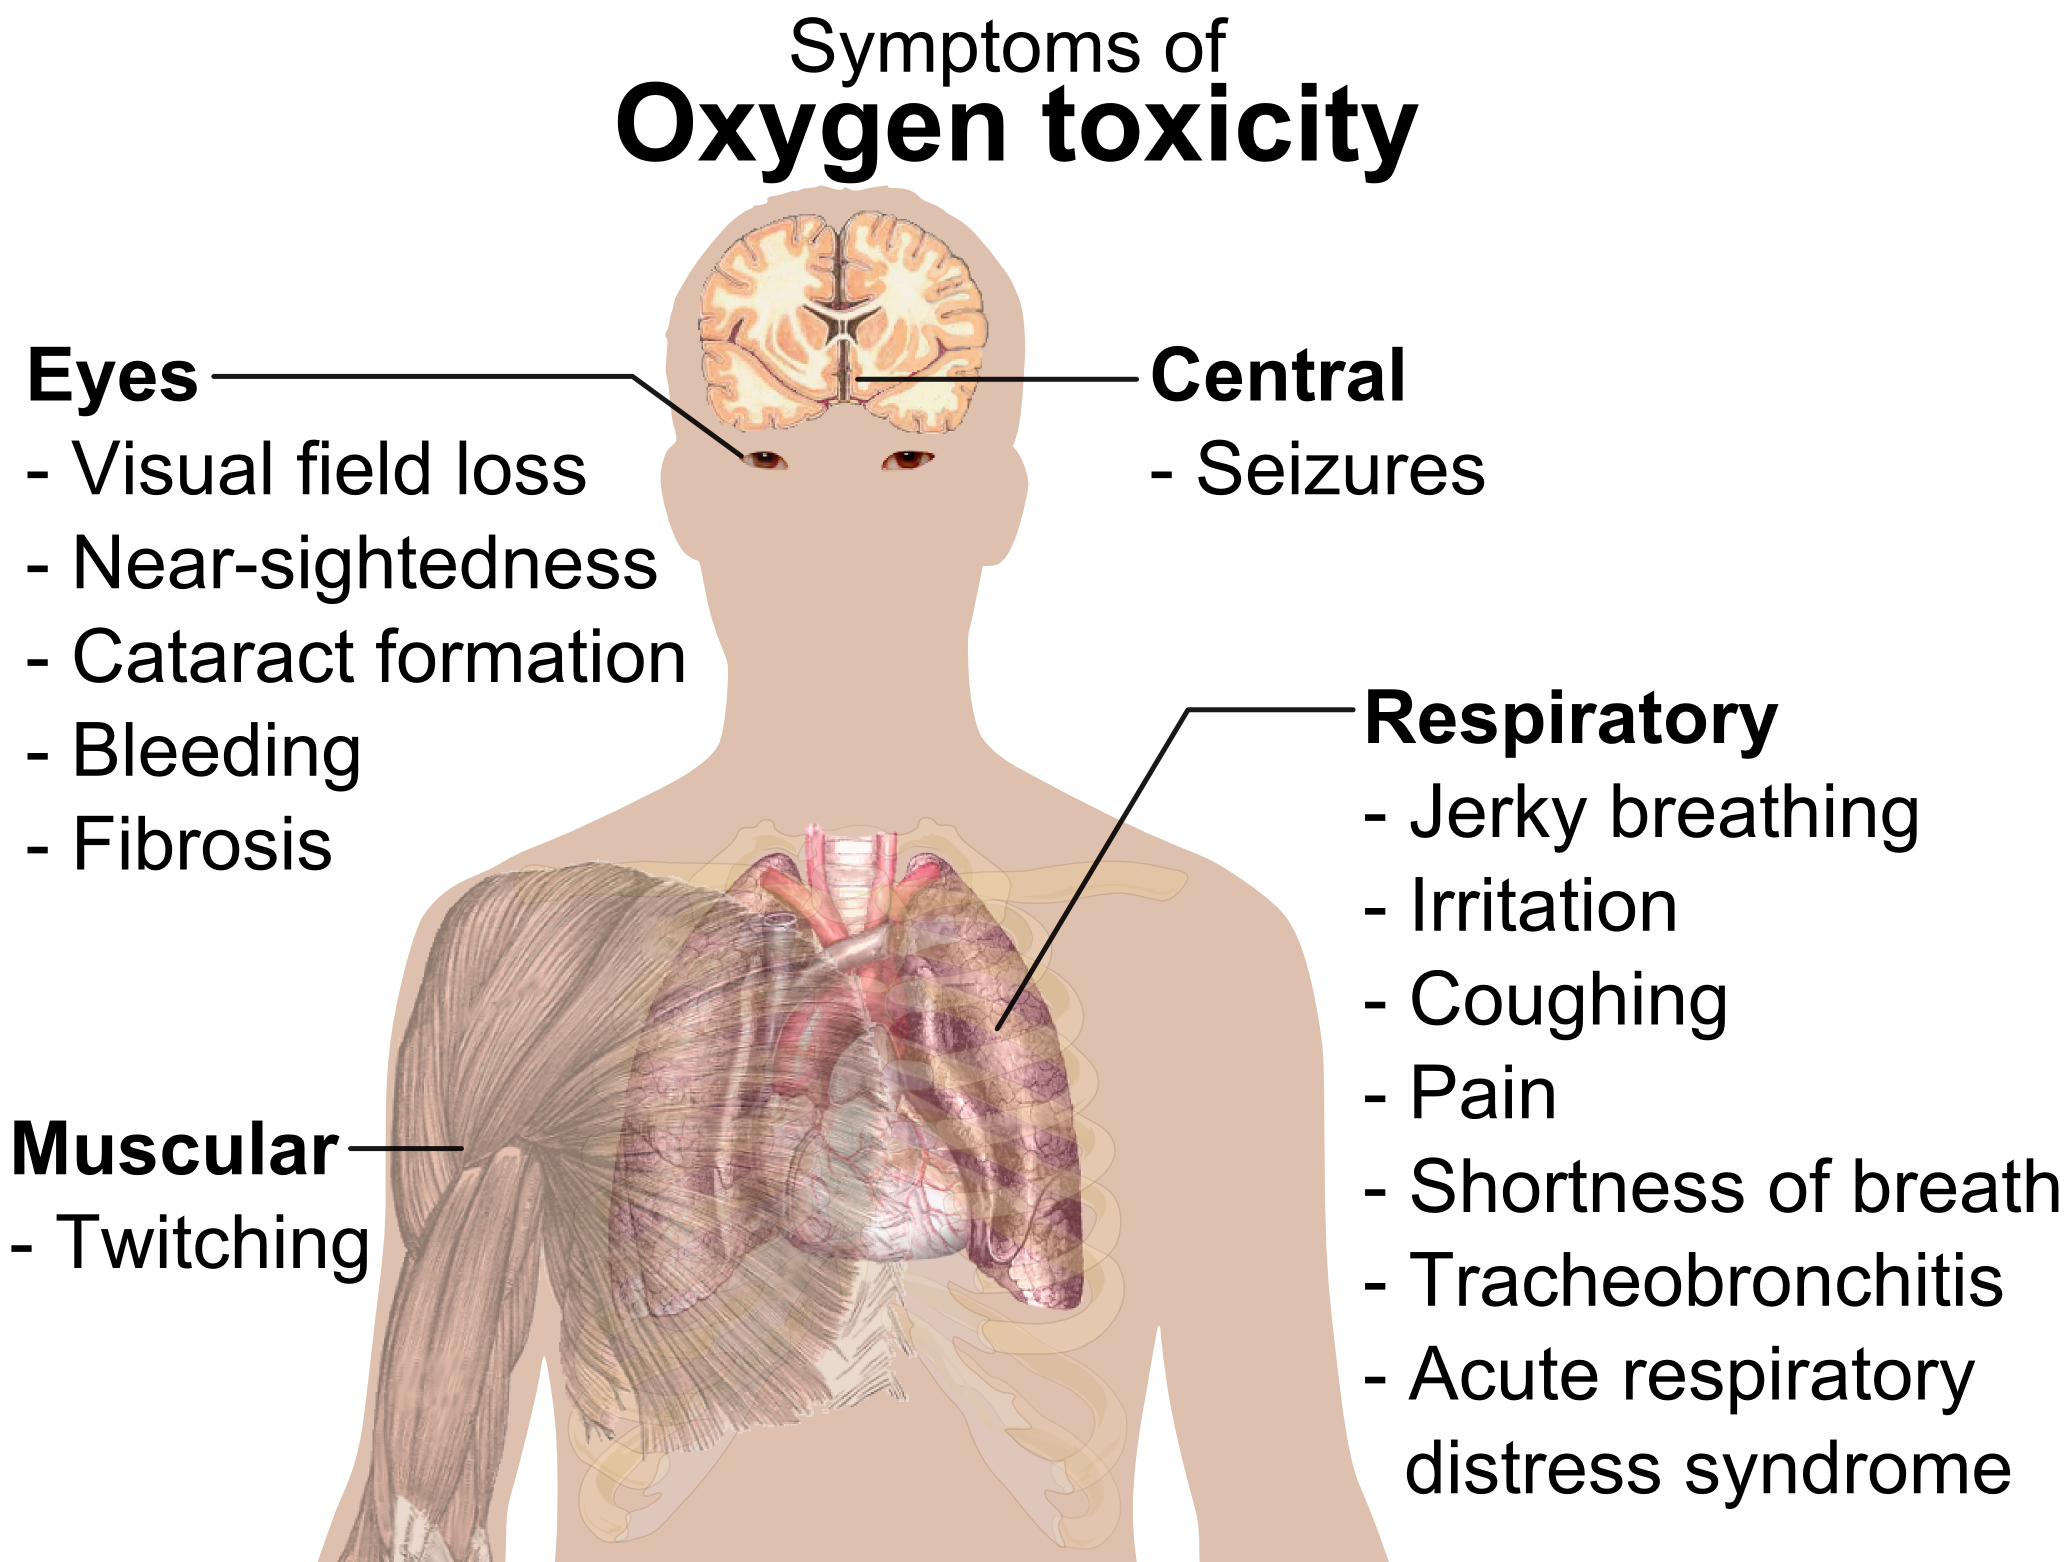 File:Symptoms of oxygen toxicity.png - Wikipedia, the free ...